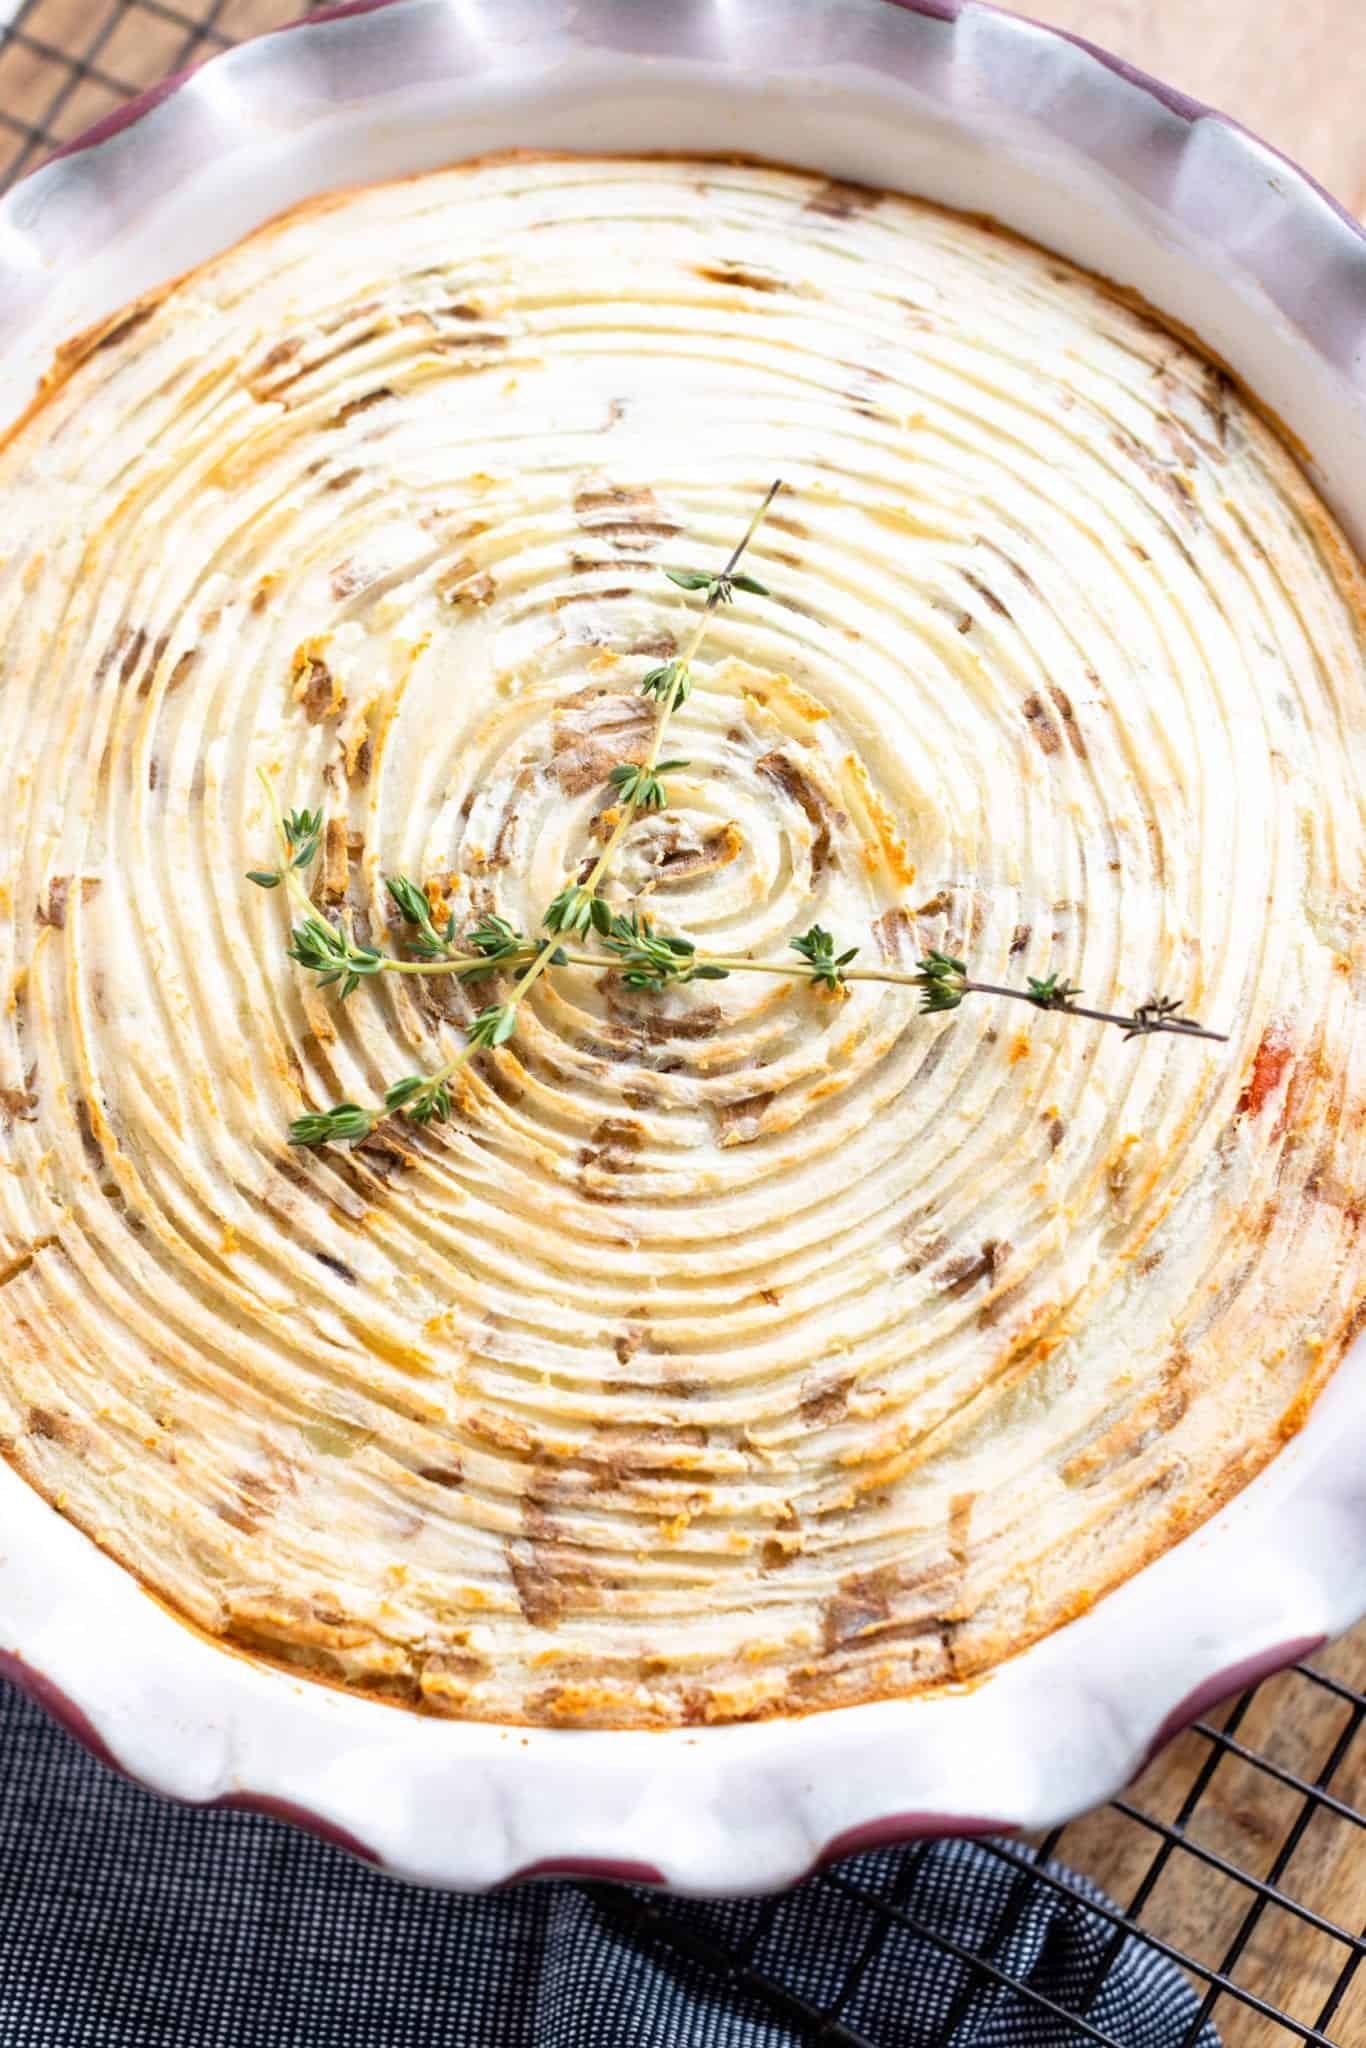 shepherd's pie with golden mashed potatoes and fresh thyme in pie dish on a butchers block with cooling rack and denim napkin. #shepherdspie #weightwatchers #ww #groundturkeyrecipe #irishrecipes #dinnerrecipes #cottagepie